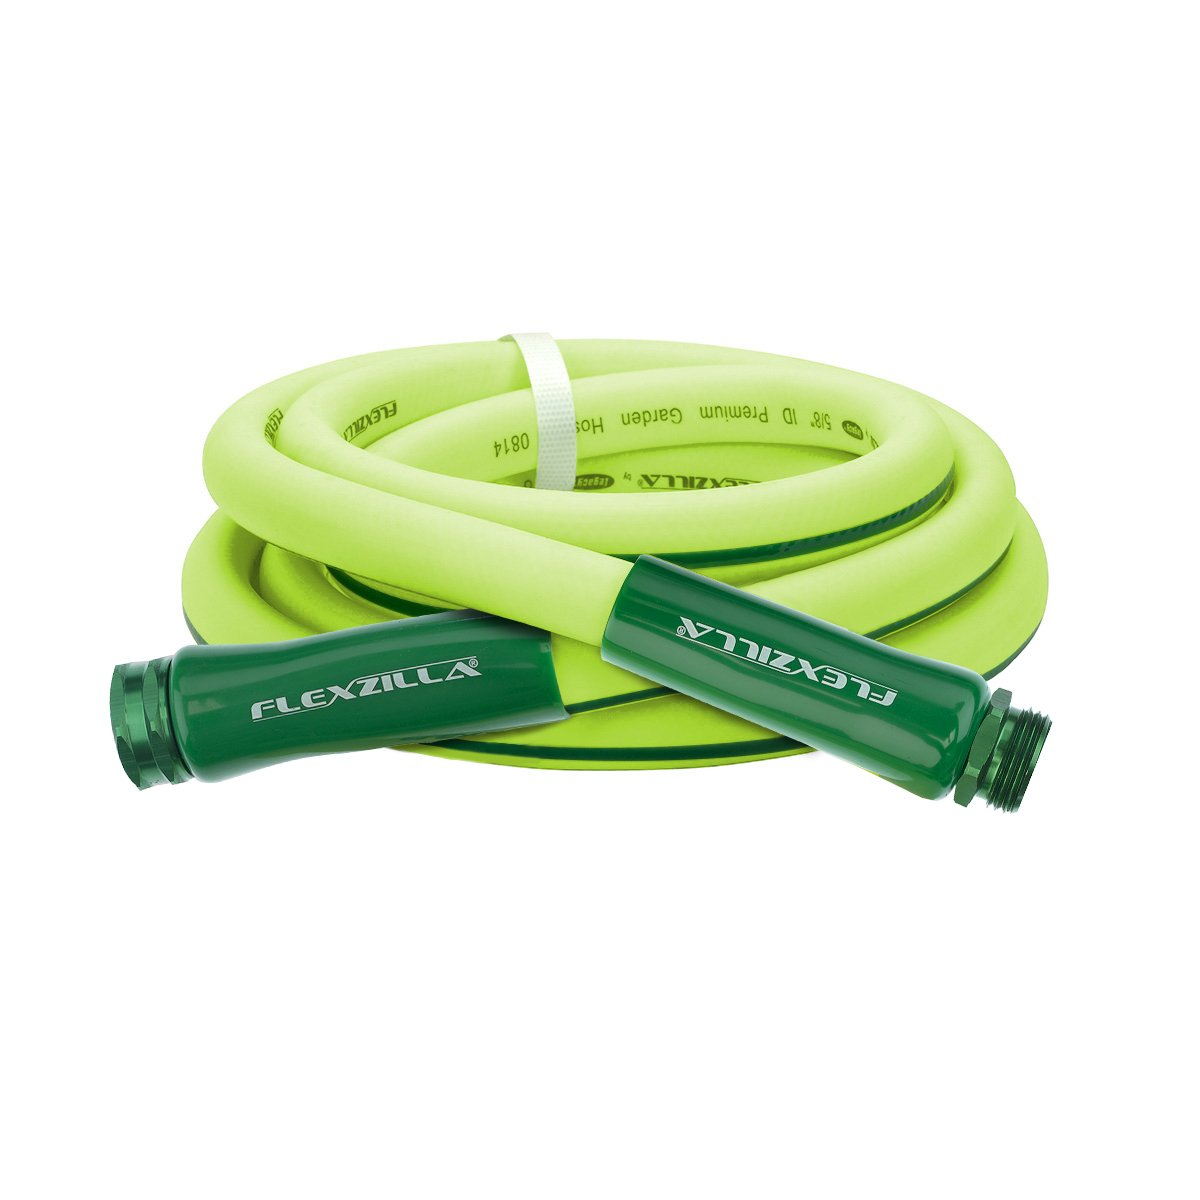 Flexzilla Garden Lead-in Hose 5/8 in. x 10 ft, 10' (feet) HFZG510YW